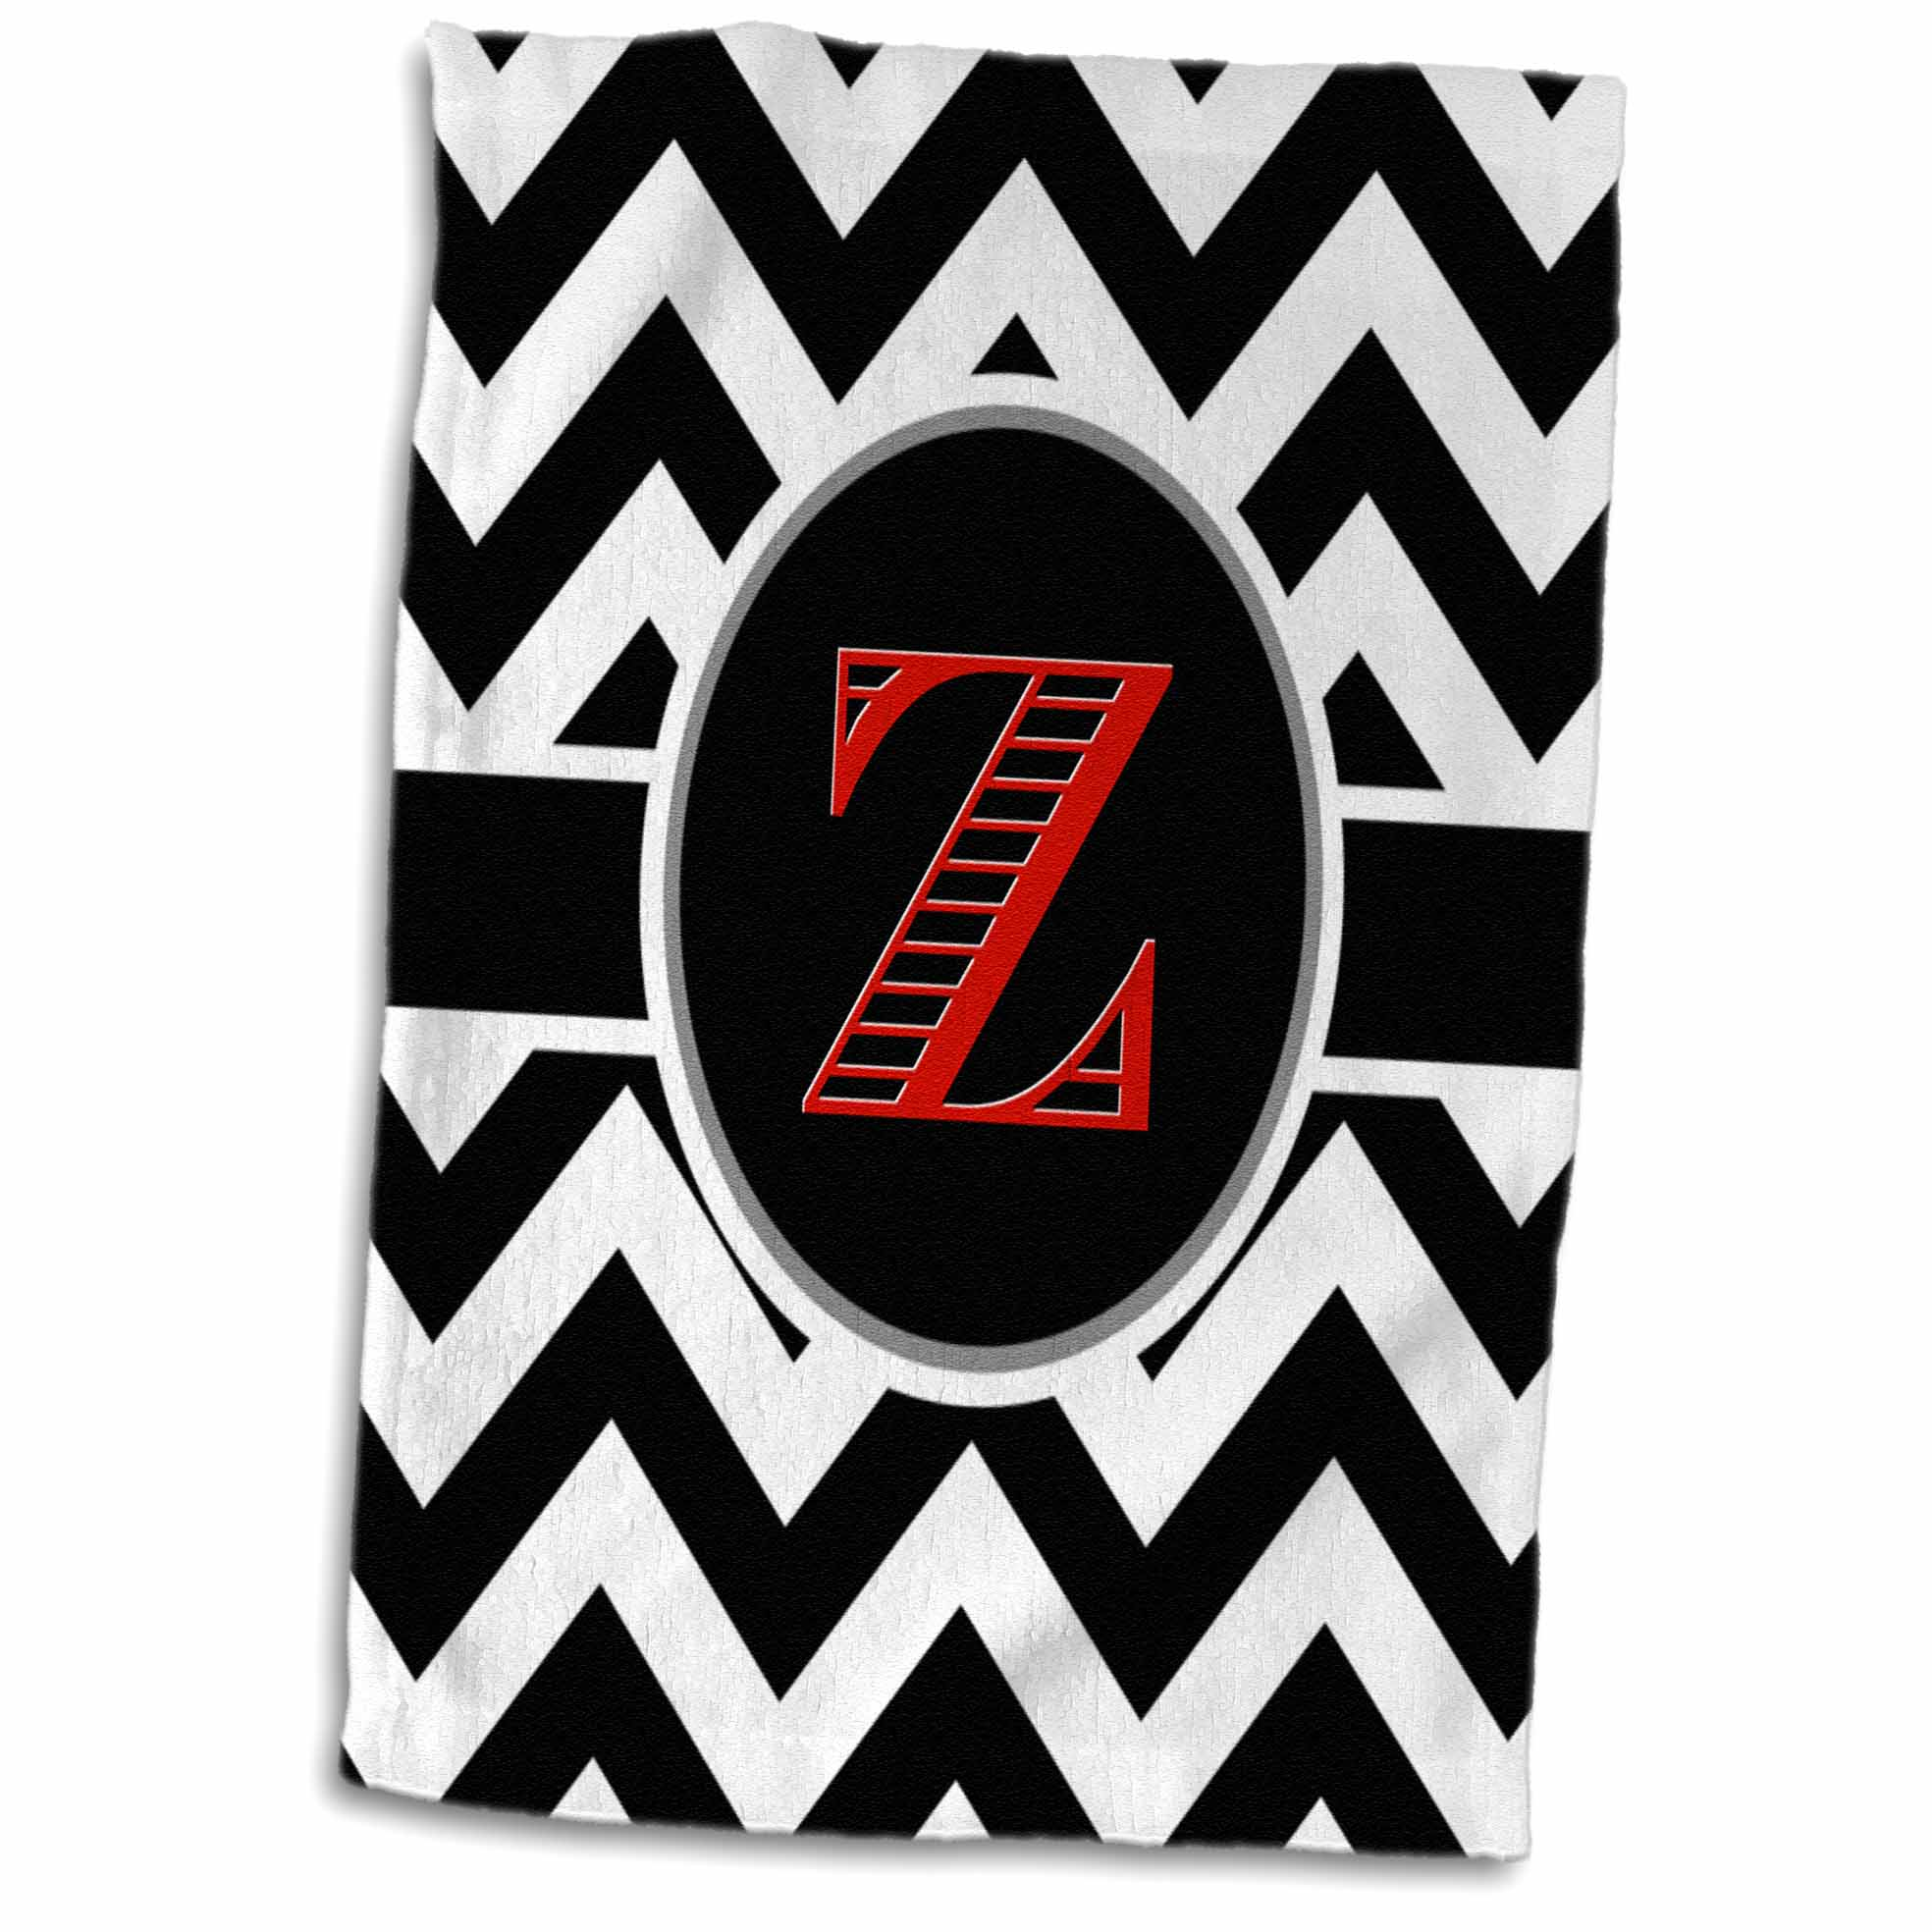 3dRose Black and white chevron monogram red initial Z - Towel, 15 by 22-inch